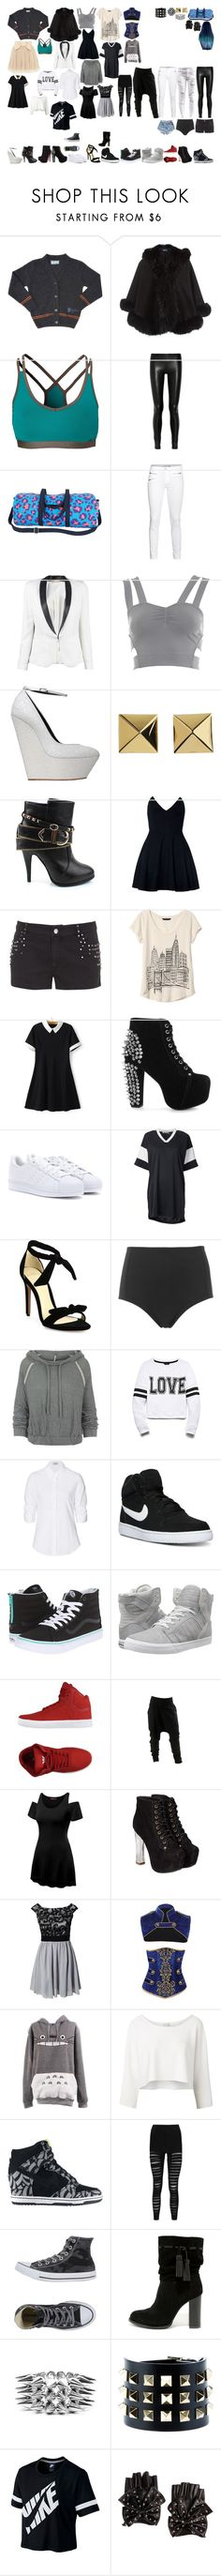 """""""my style 20"""" by keeliewatsonoffical ❤ liked on Polyvore featuring Harrods, Casall, The Row, J Brand, rag & bone, Miss Selfridge, Giuseppe Zanotti, Vince Camuto, Christian Louboutin and Motel"""